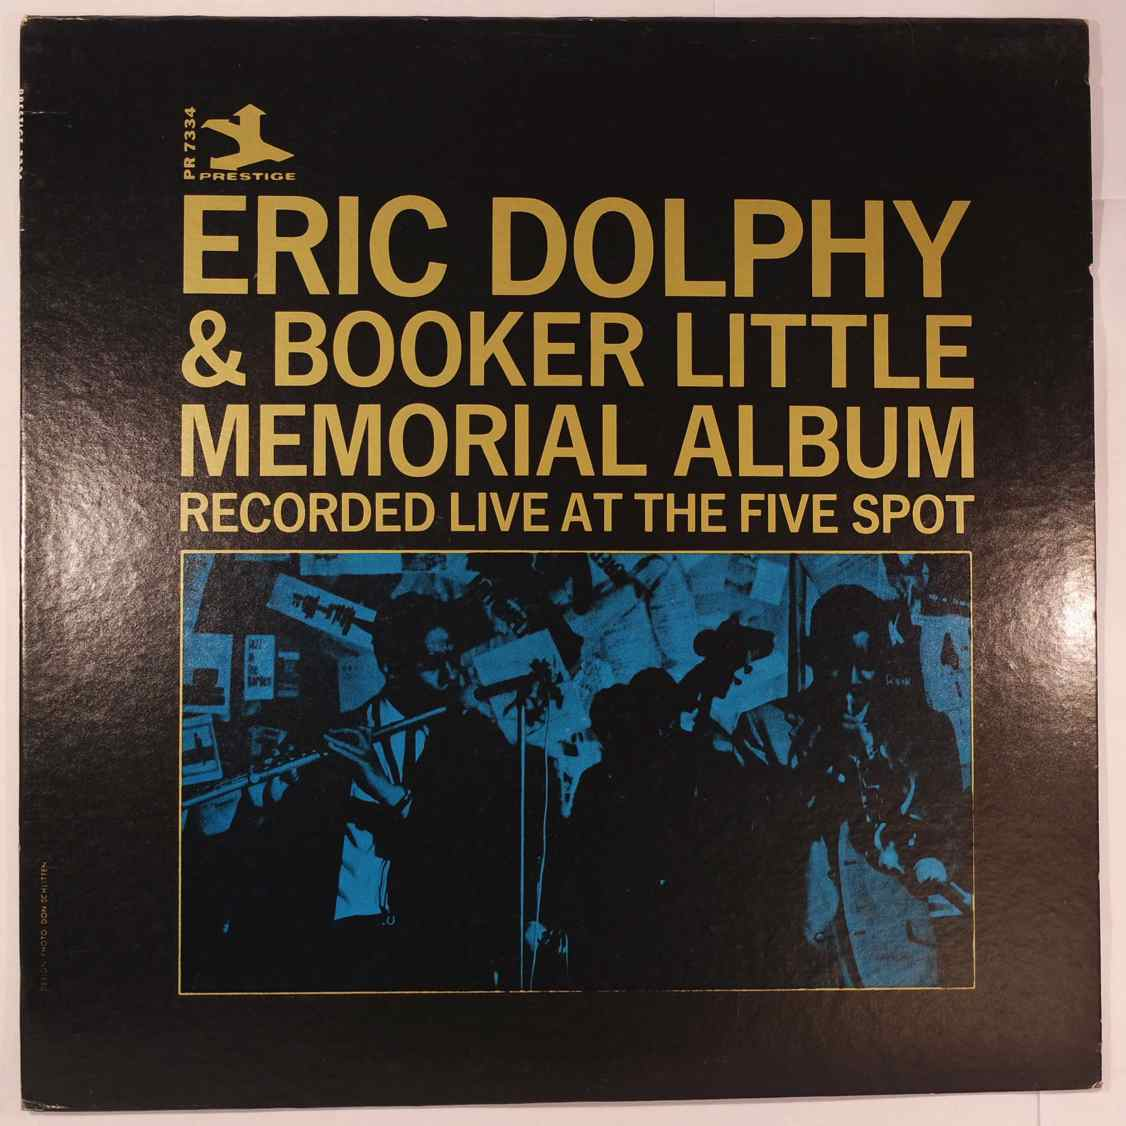 Eric Dolphy & Booker Little Memorial Album (Recorded Live At The Five Spot)